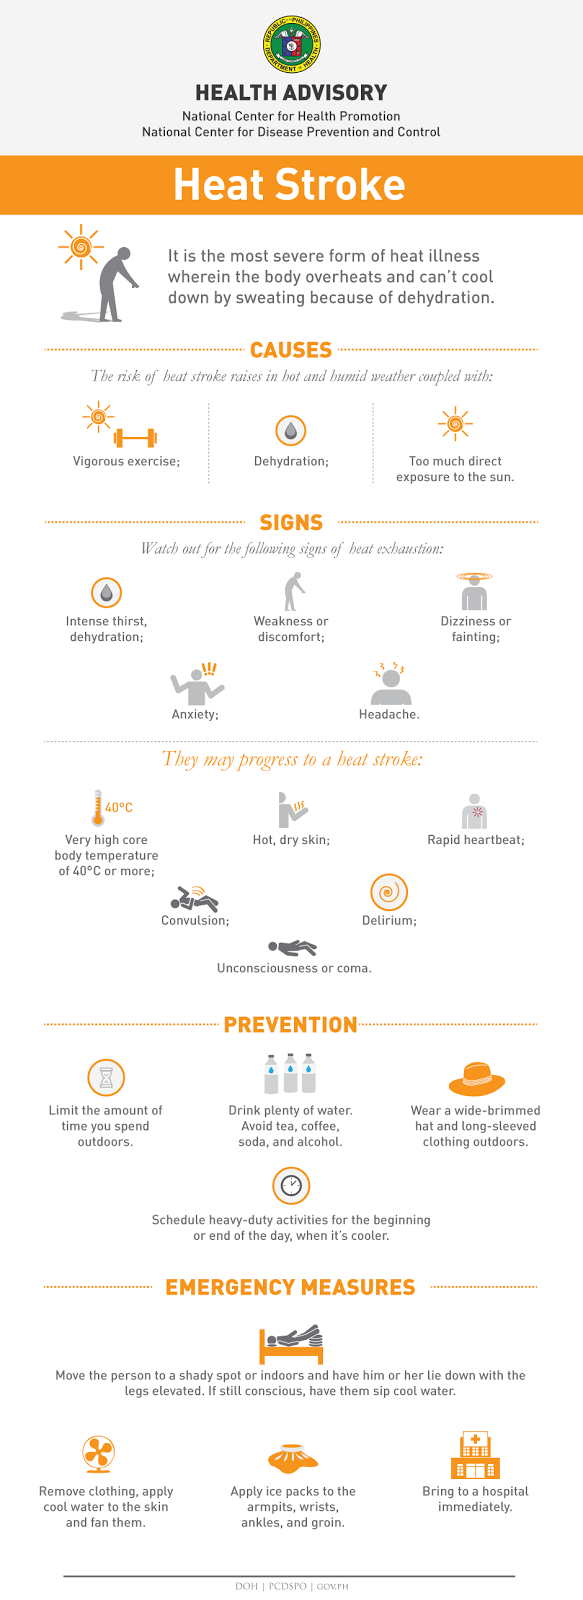 INFOGRAPHIC: The causes and signs of a heat stroke, and tips on how to prevent one.